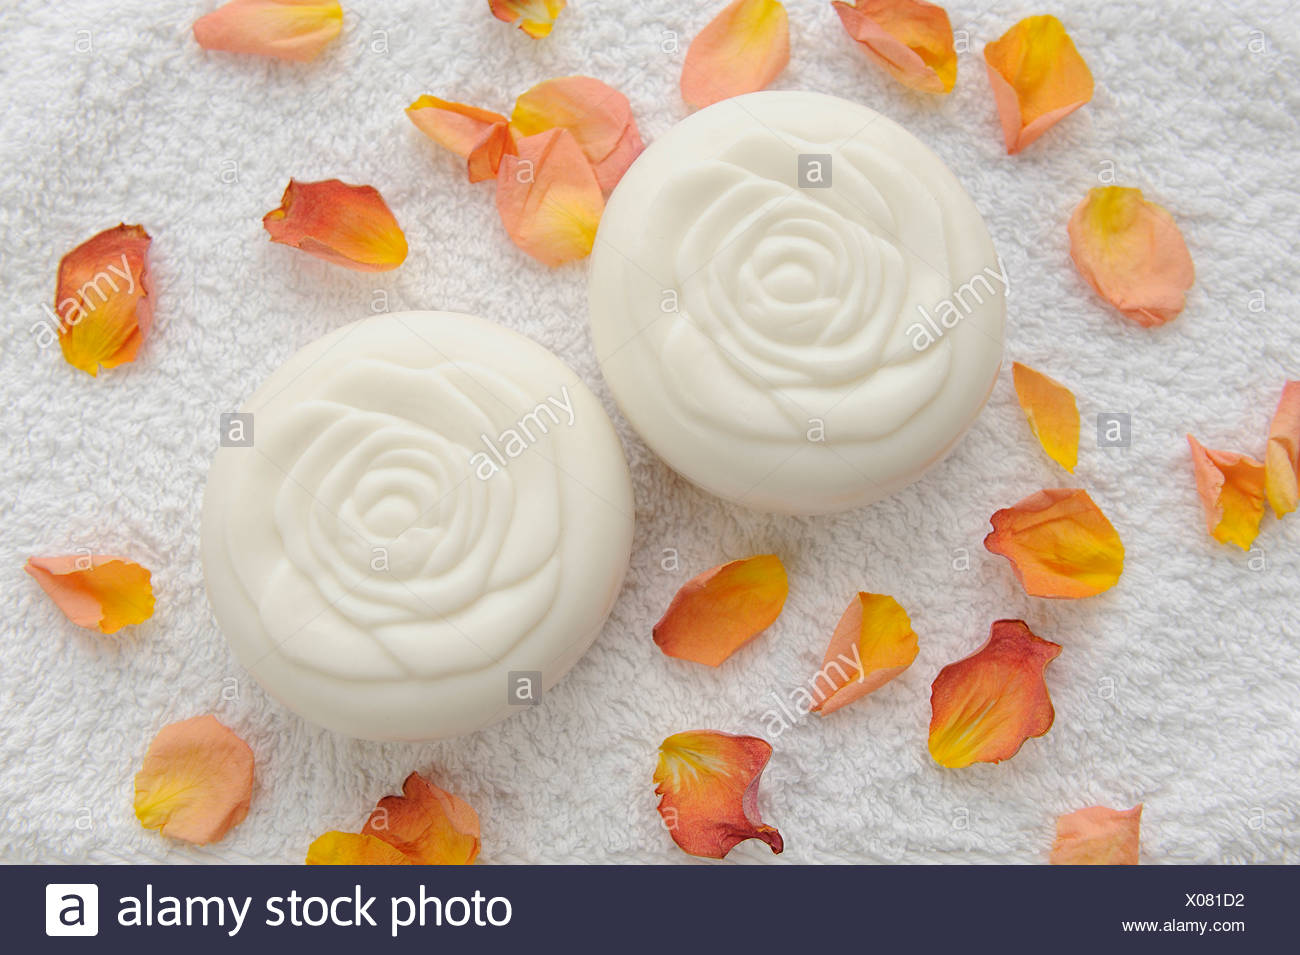 Two white round bars of soap a rose shaped pattern on the top of